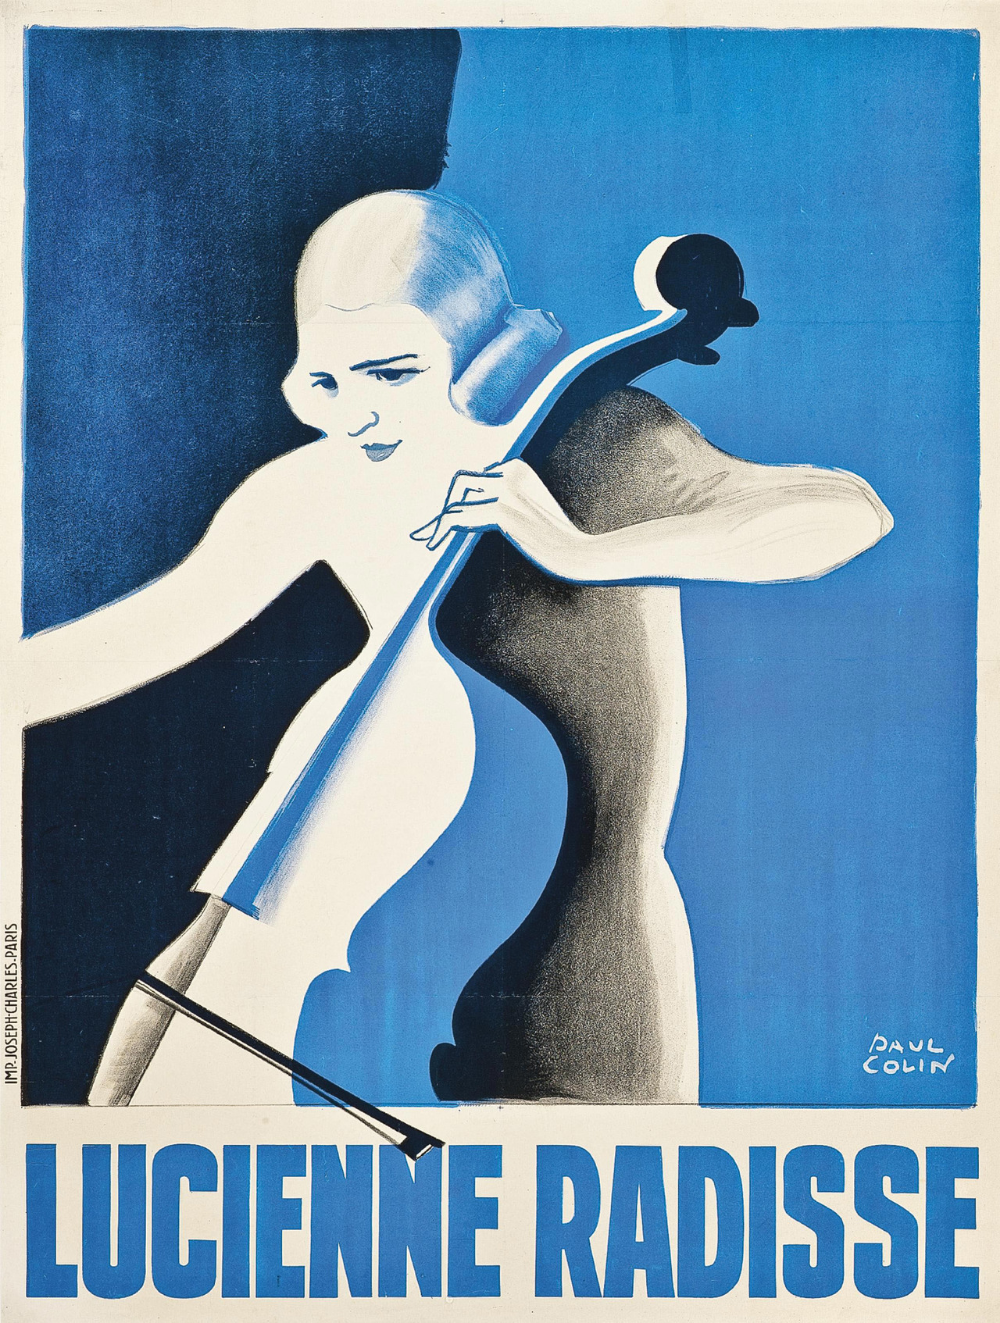 André Renaud VINTAGE AD POSTER Paul Colin FRANCE 1929 24X36 first rate